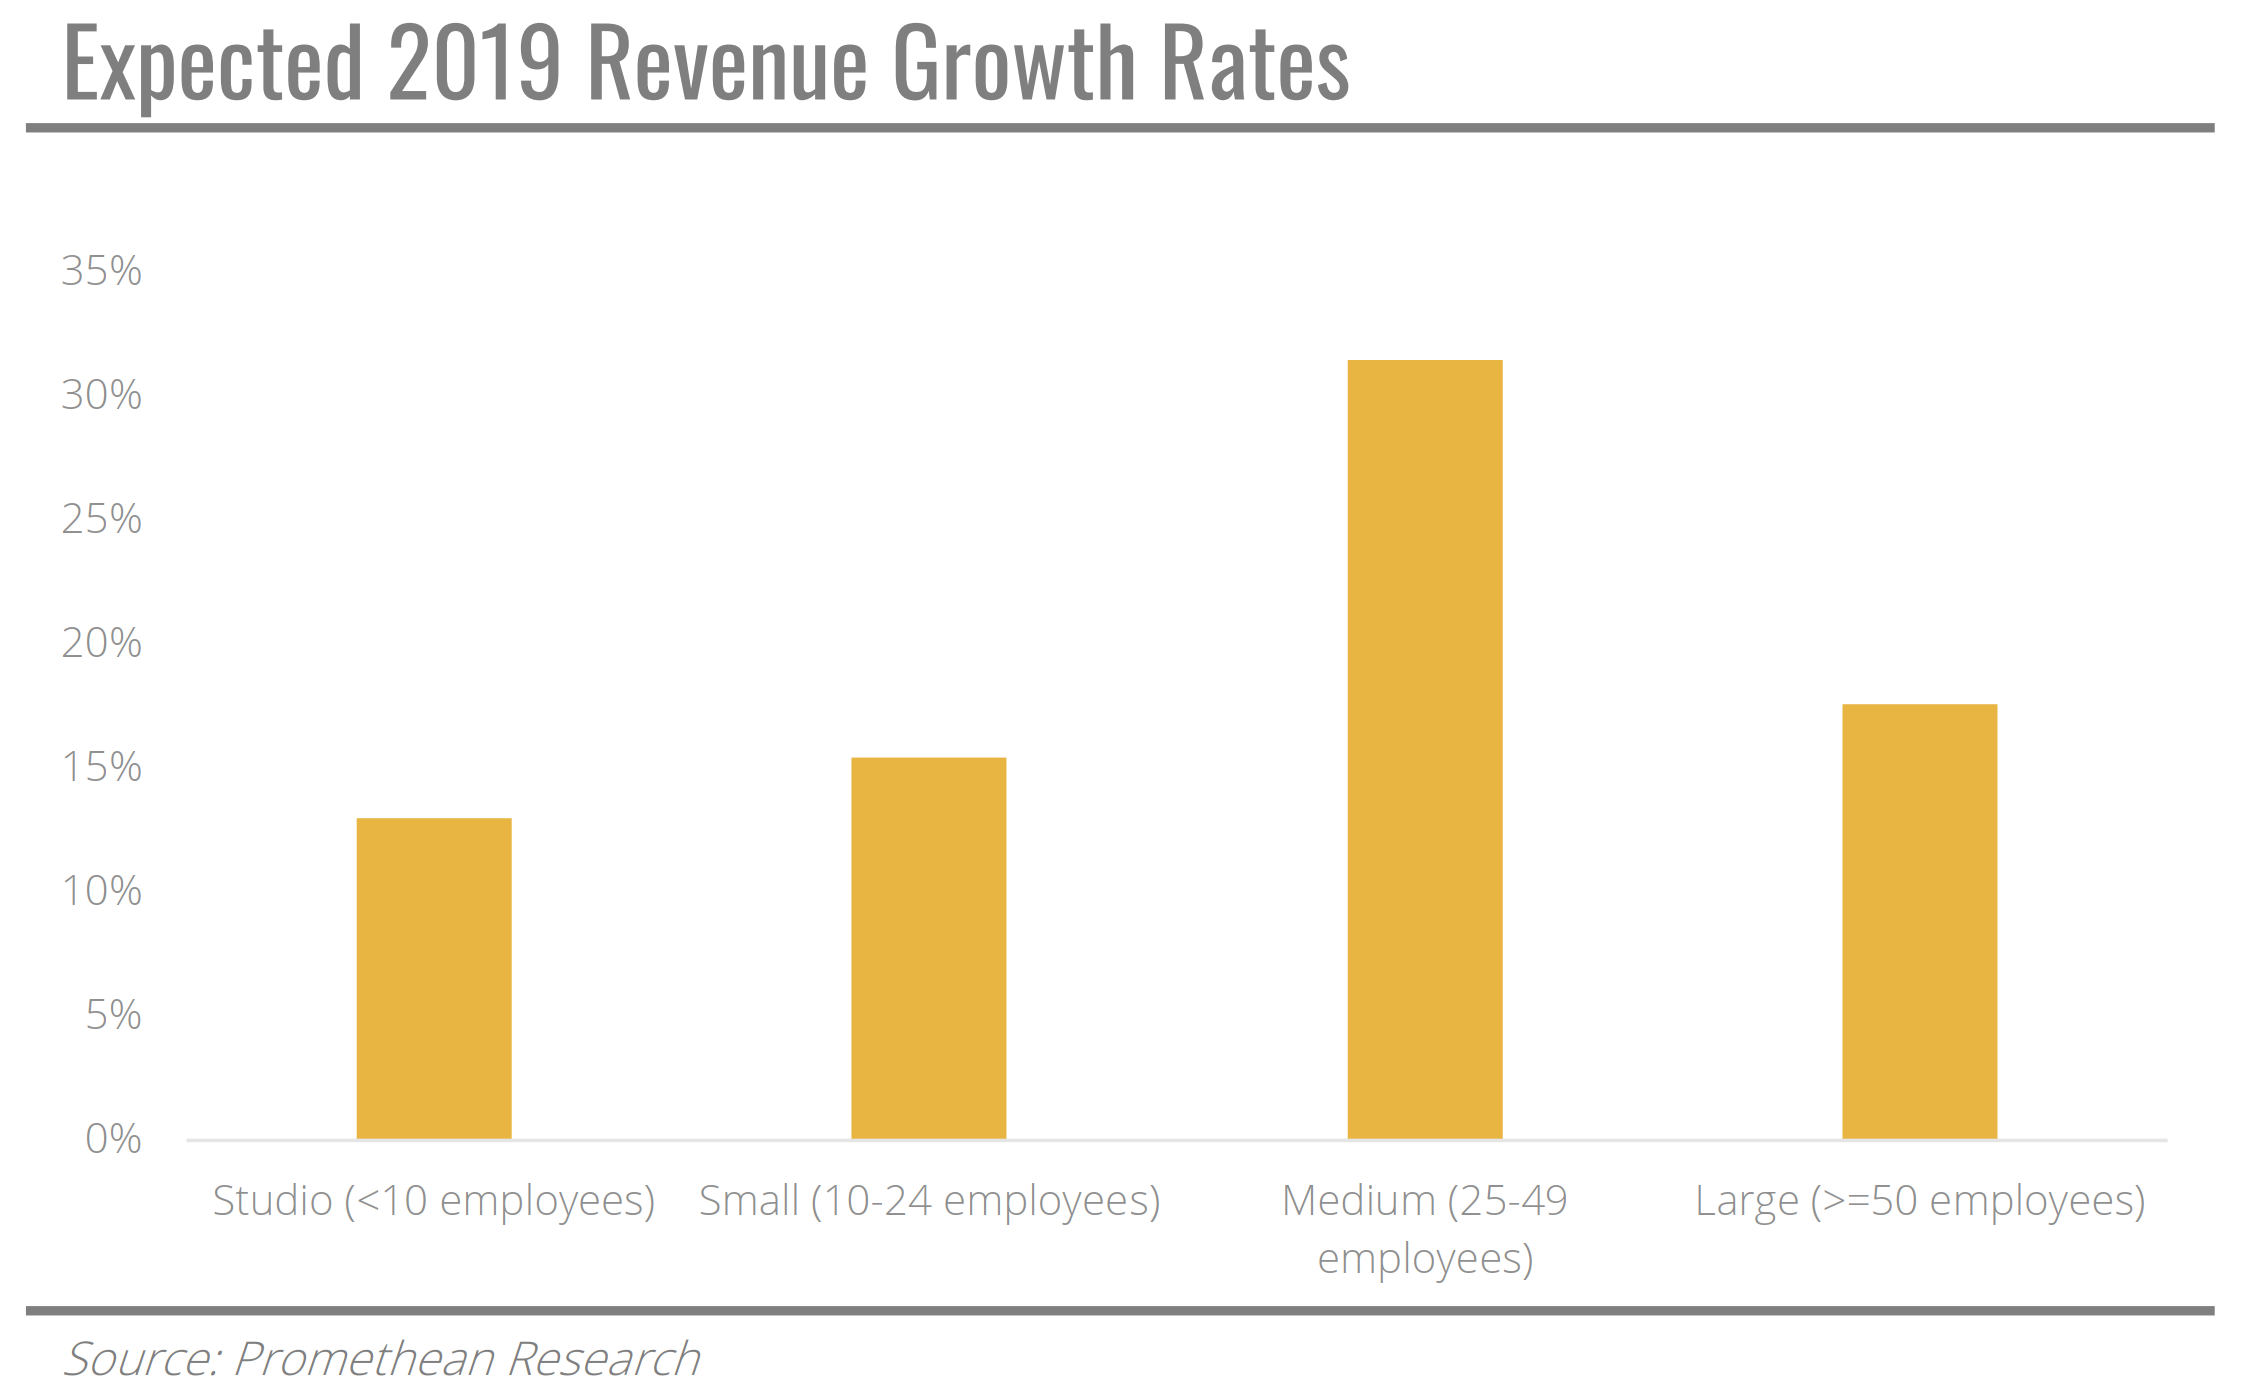 Expected 2019 revenue growth rates